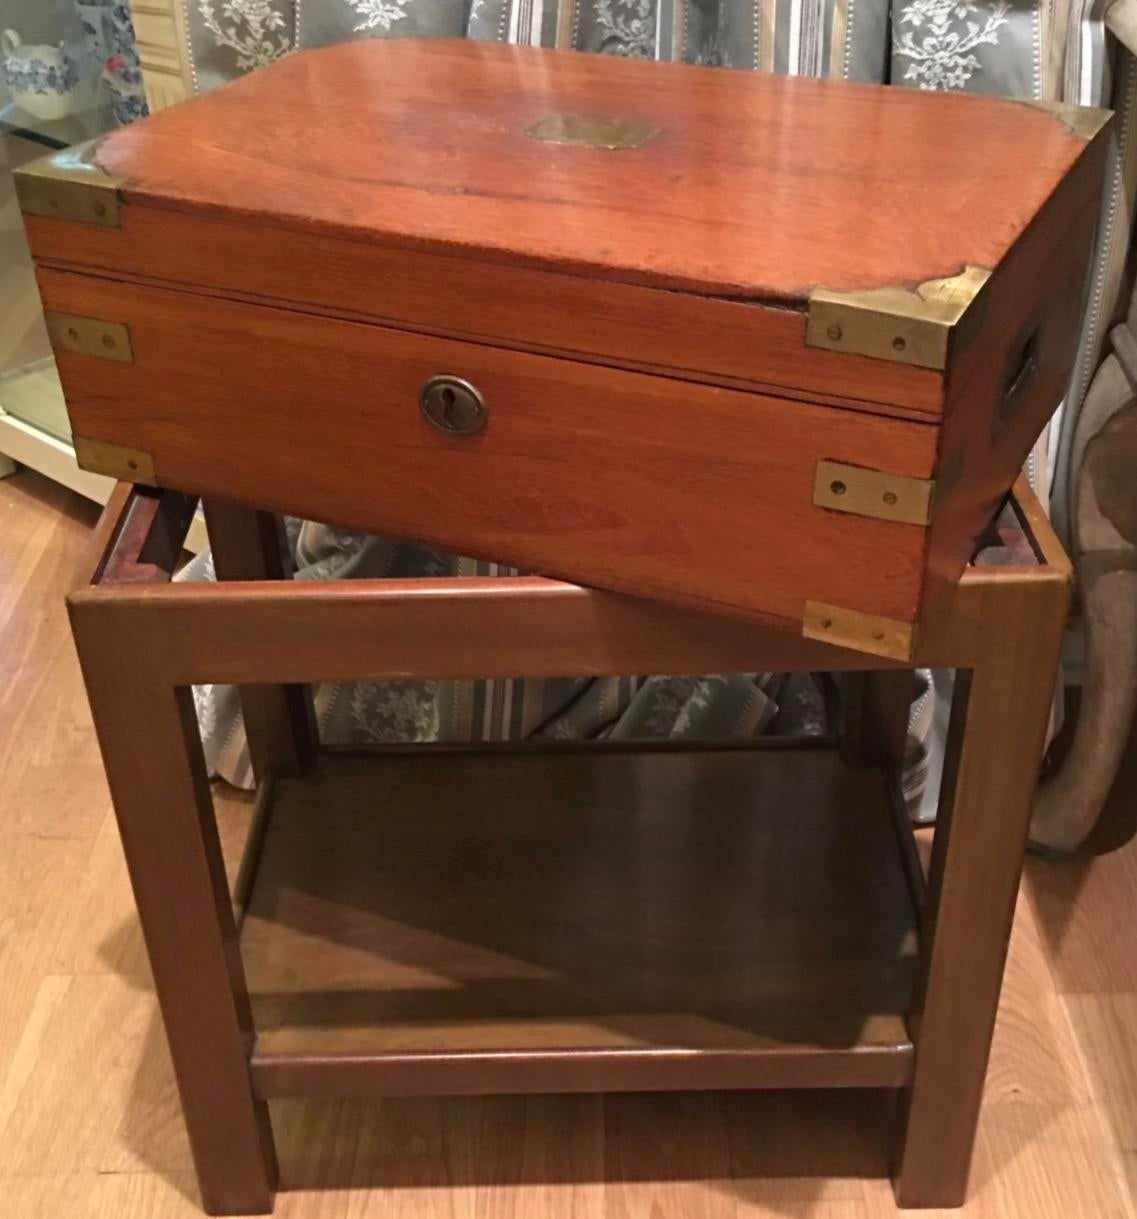 Unusual Antique Campaign Chest Box on Stand Table | Chairish